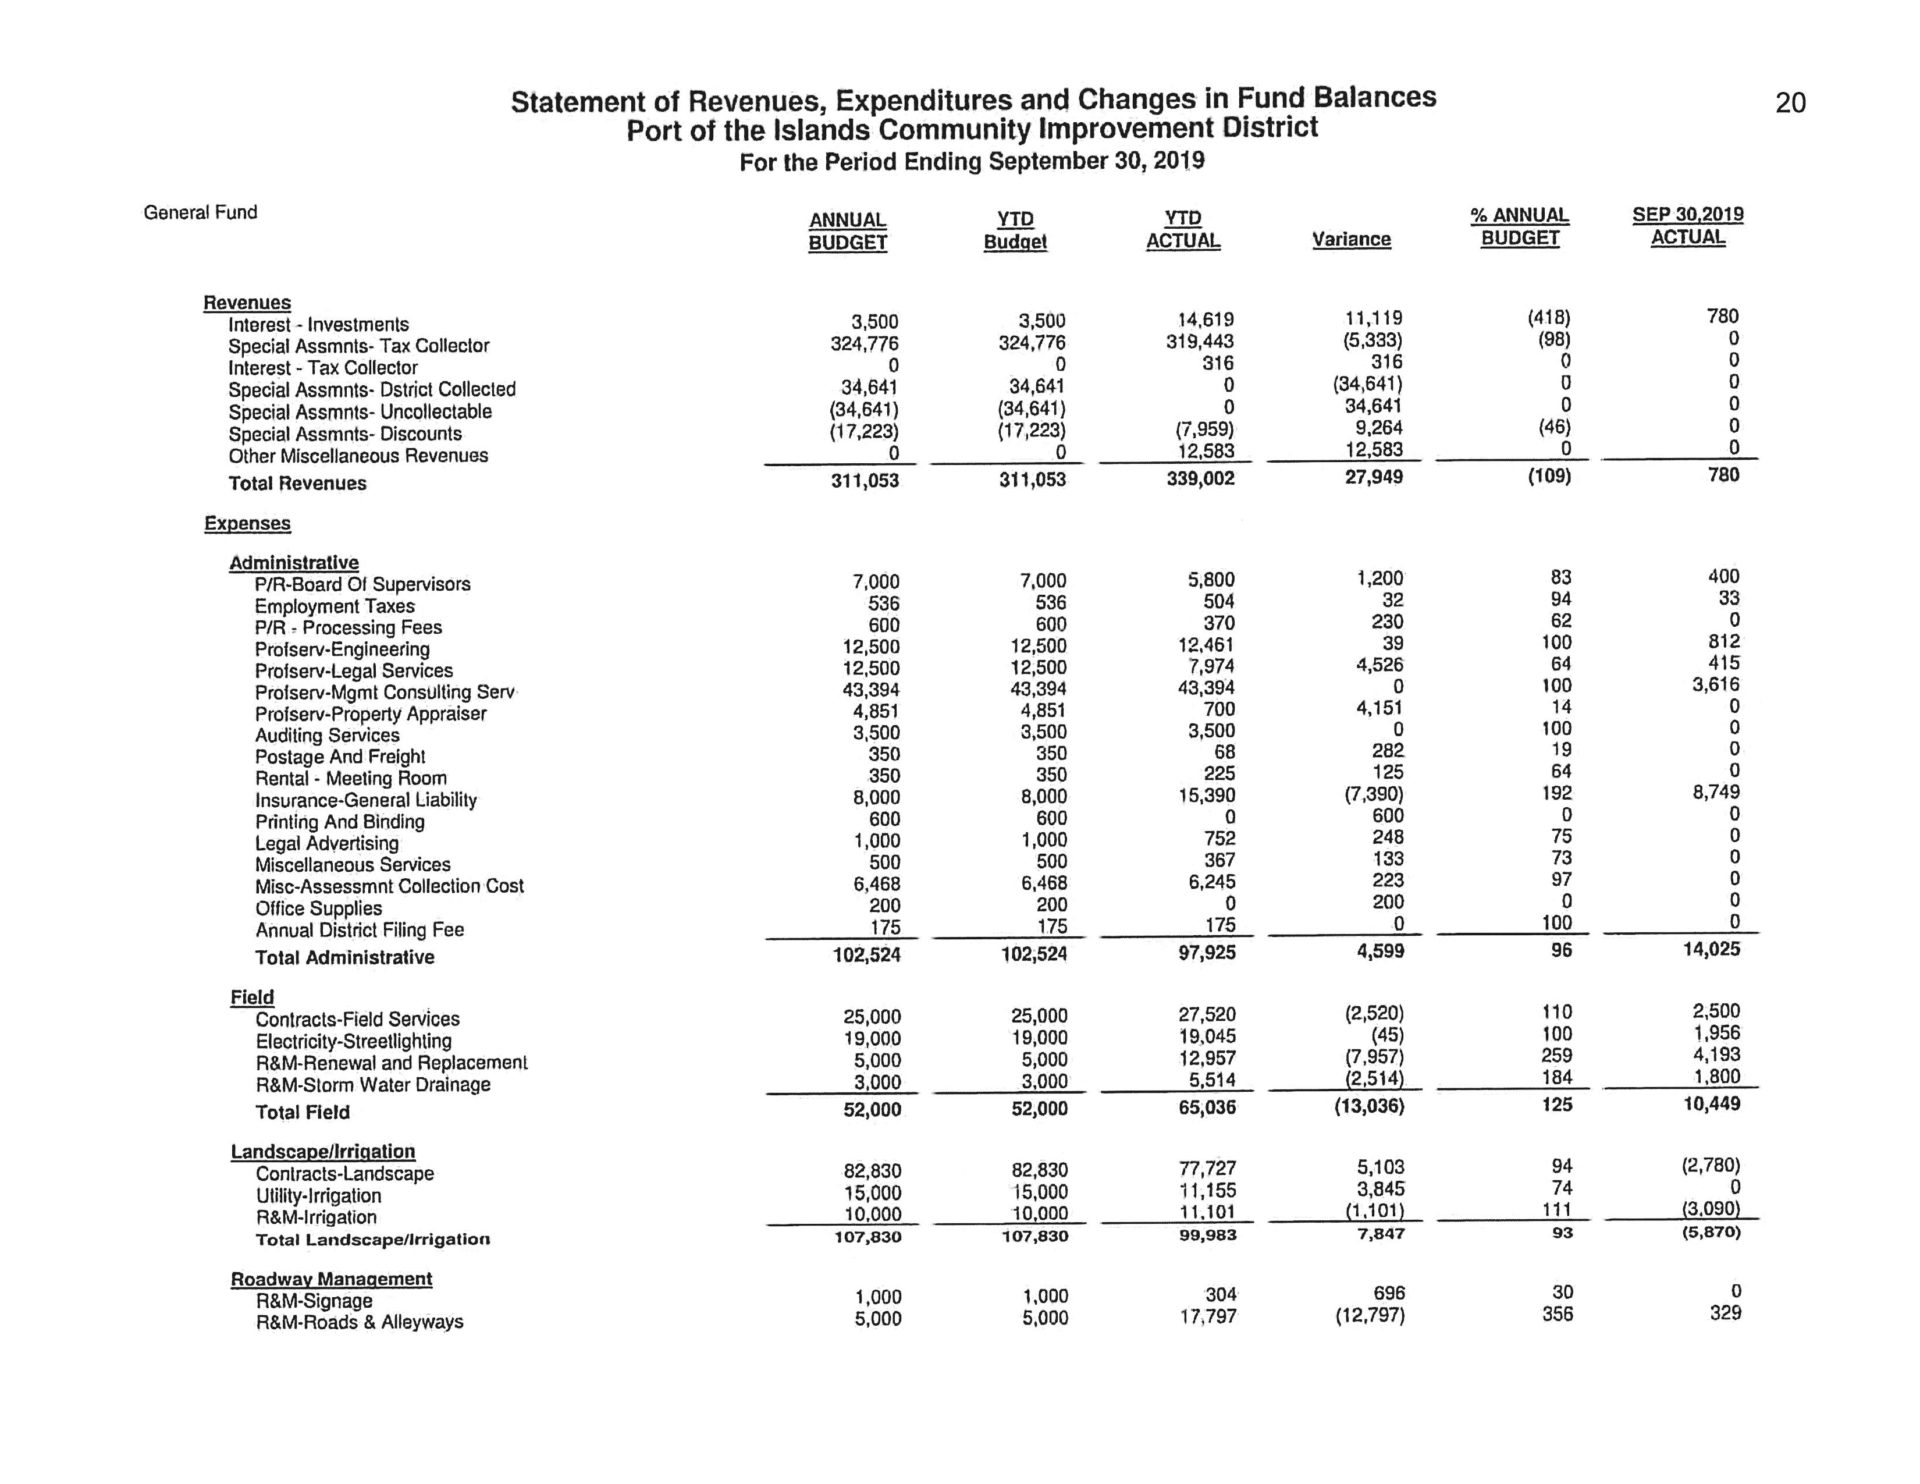 Statement of Revenues, Expenditures and Changes in Fund Balances 9-2019